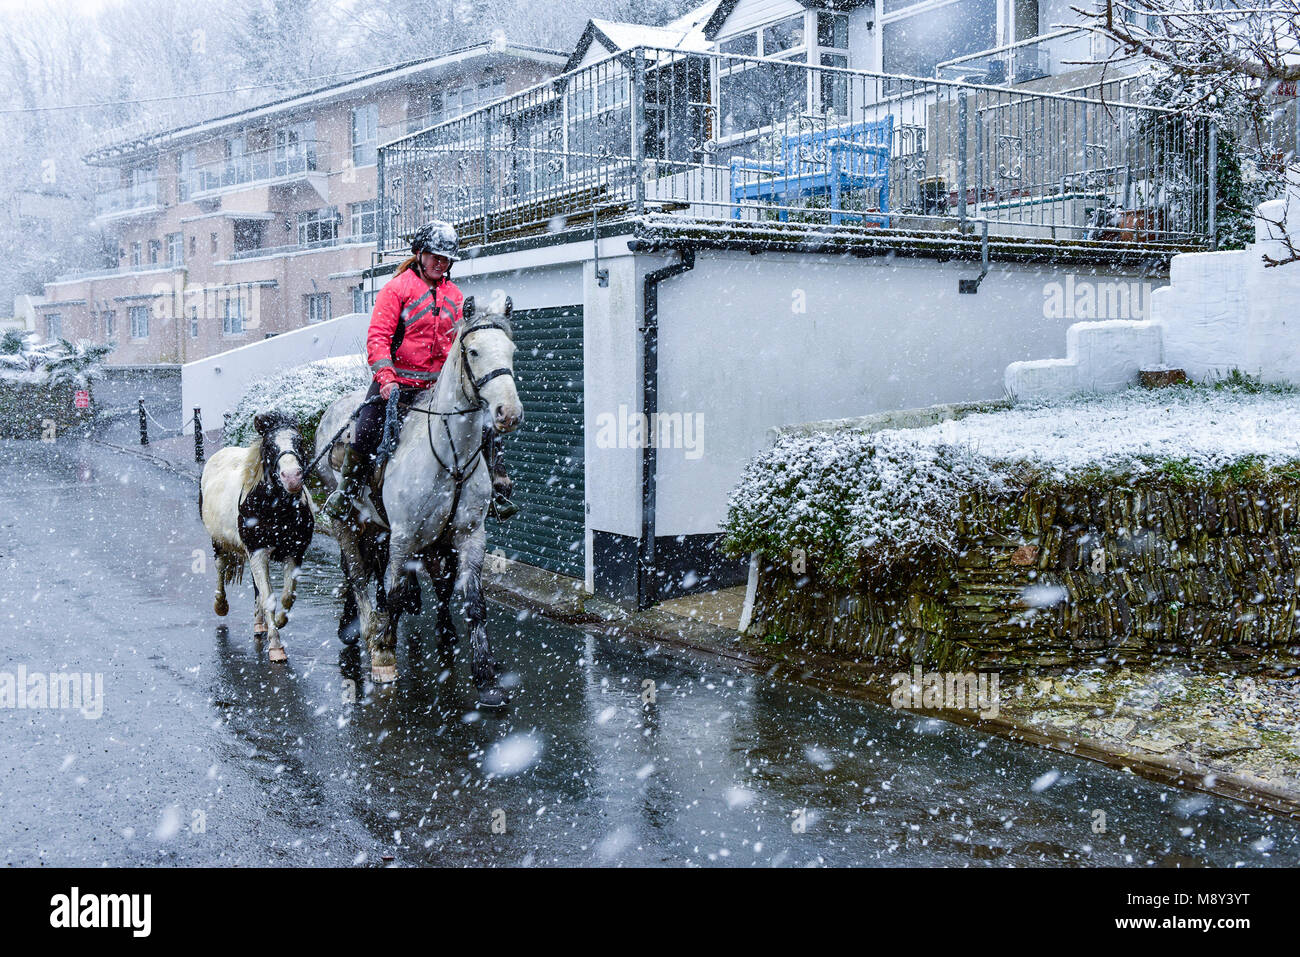 A horse rider riding her horse through heavy snowfall in Newquay Cornwall. - Stock Image